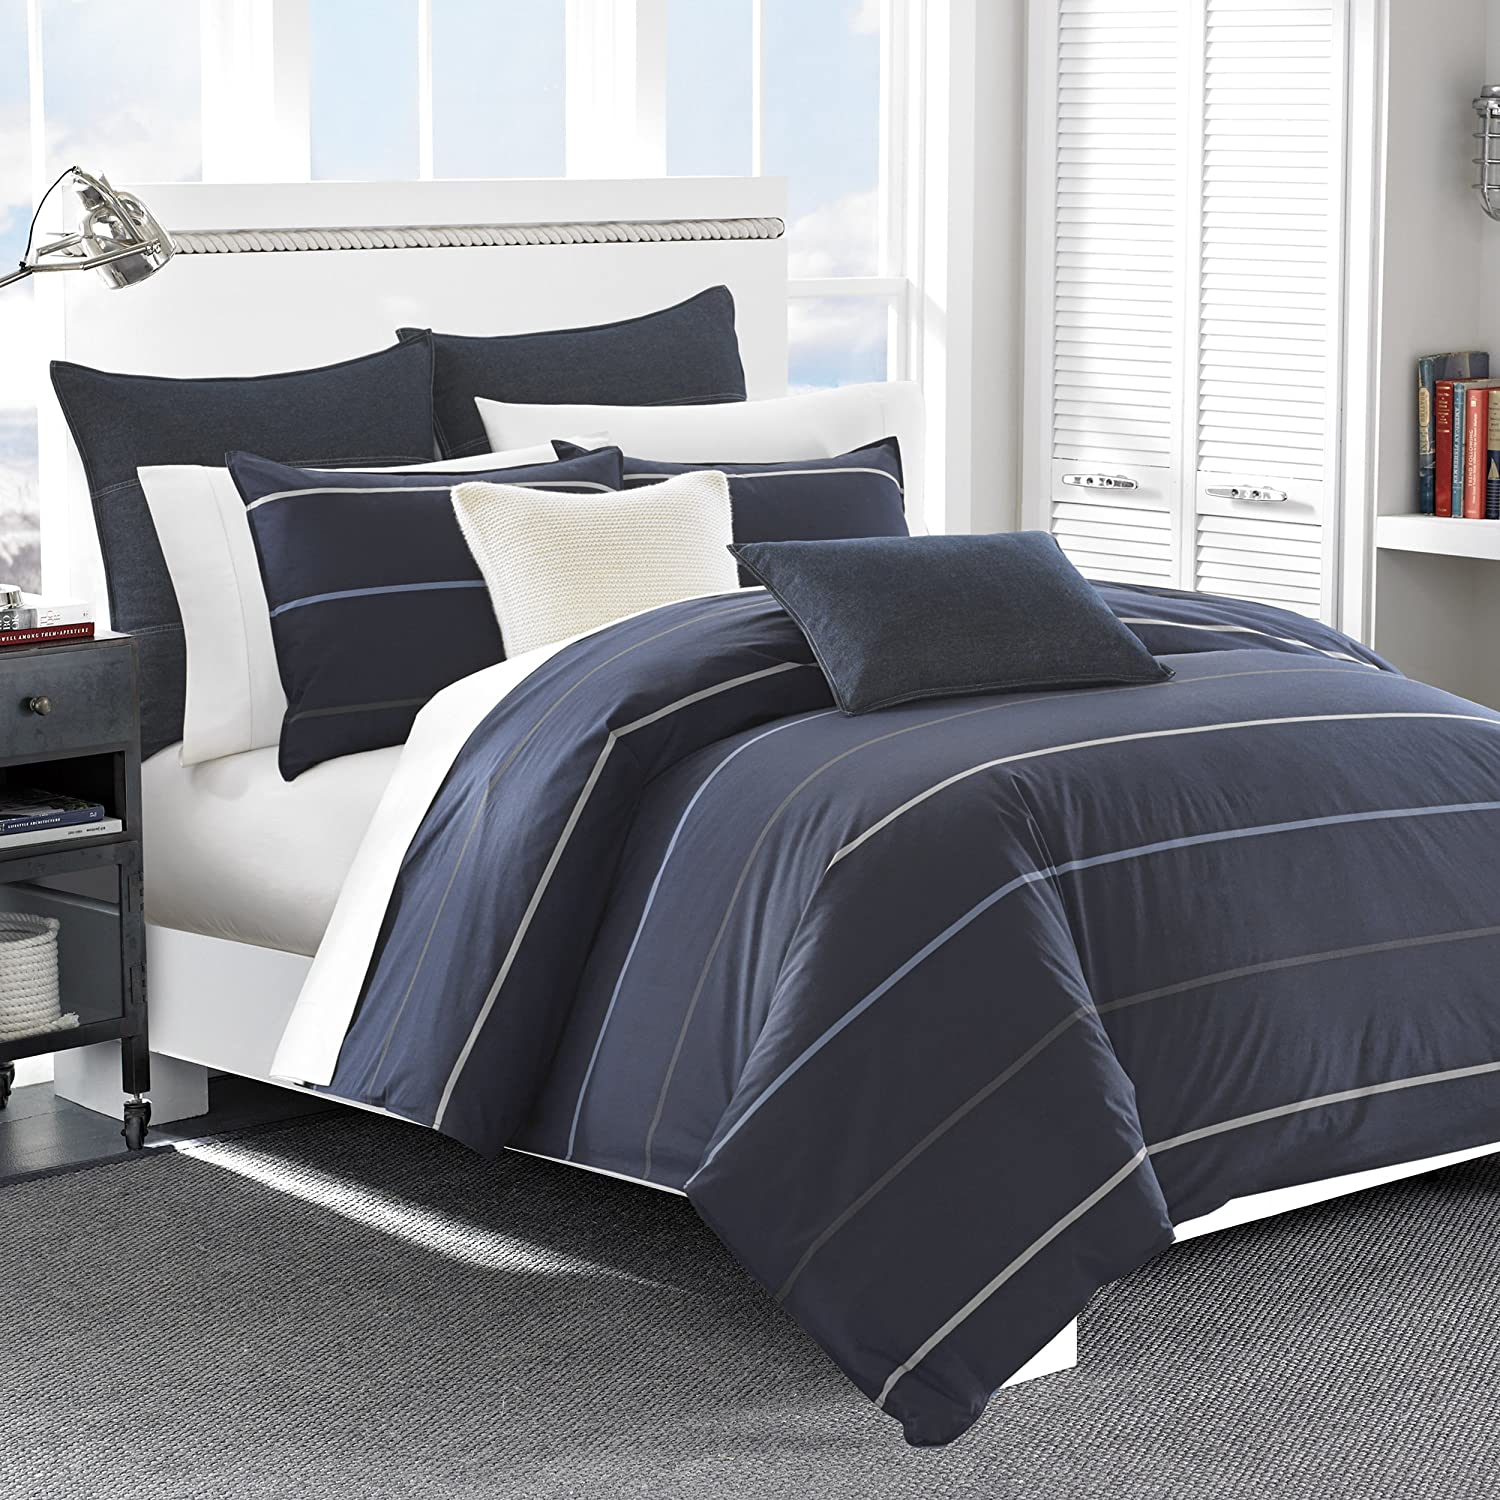 Nautica 217309 Southport Cotton Comforter Set, Full/Queen, Blue/White Revman International